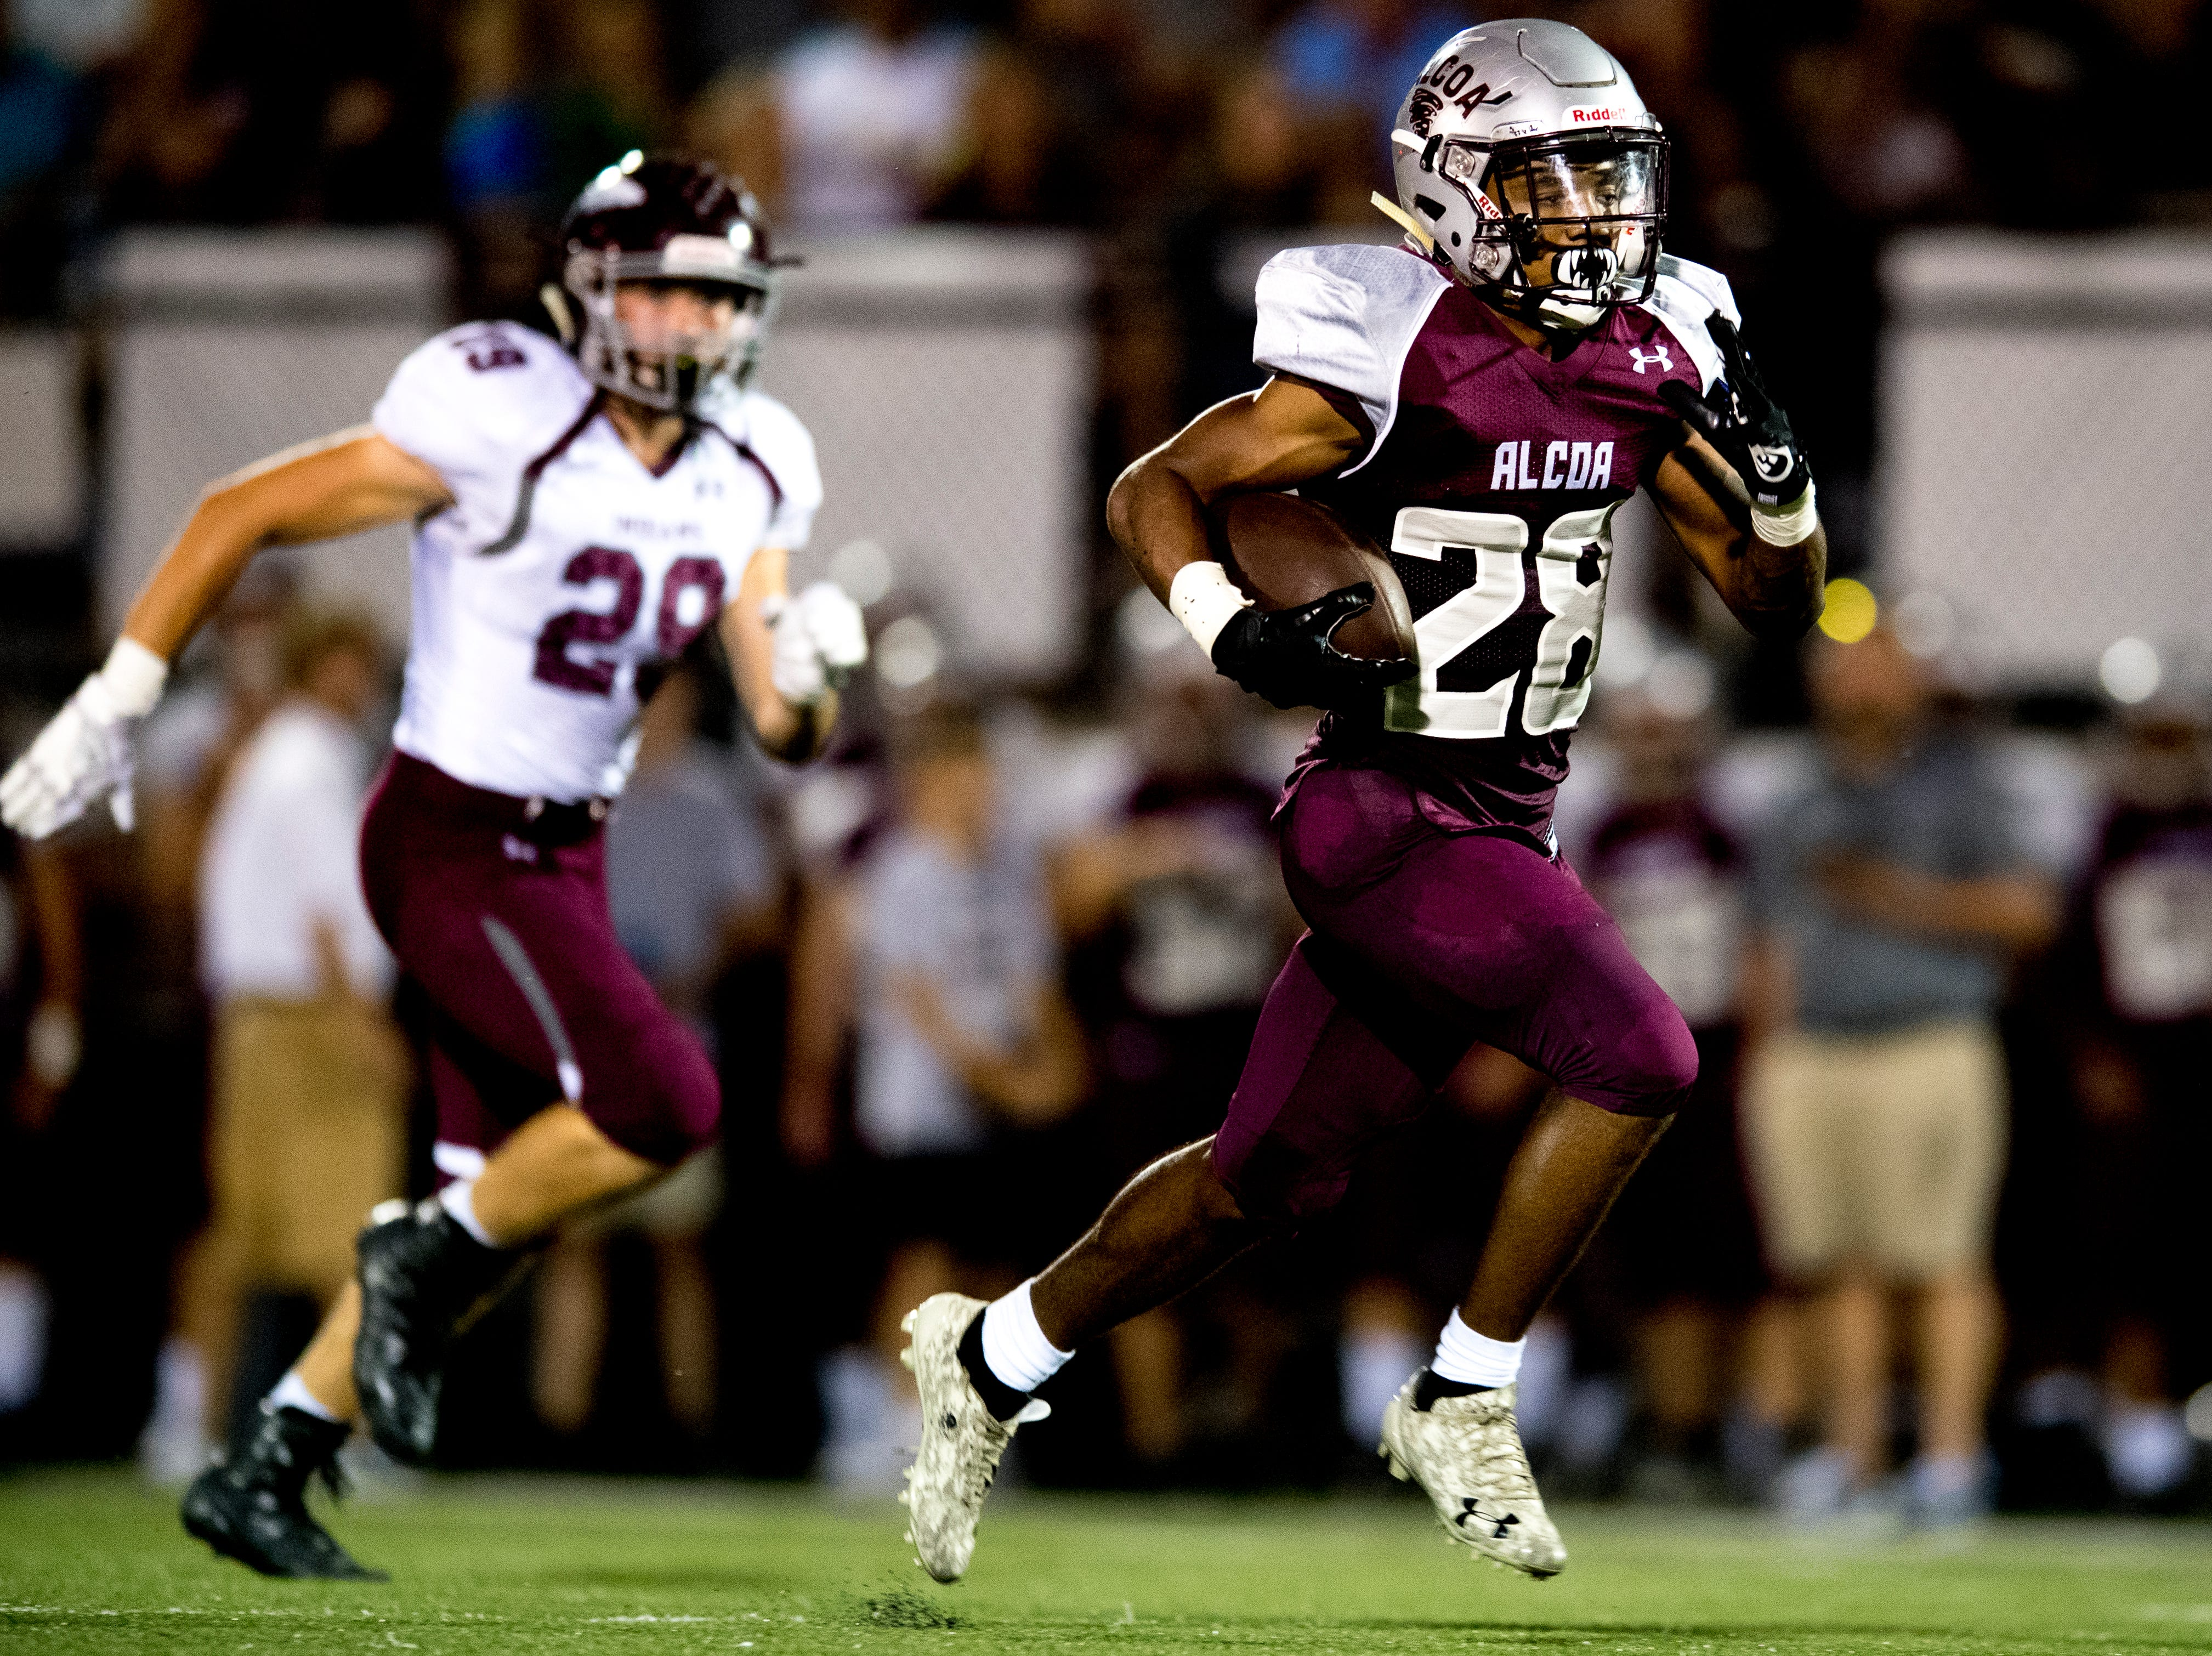 Alcoa's J.R. Jones (28) runs with the ball down the field during a game between Alcoa and Dobyns-Bennett at Alcoa High School in Alcoa, Tennessee on Friday, September 21, 2018.